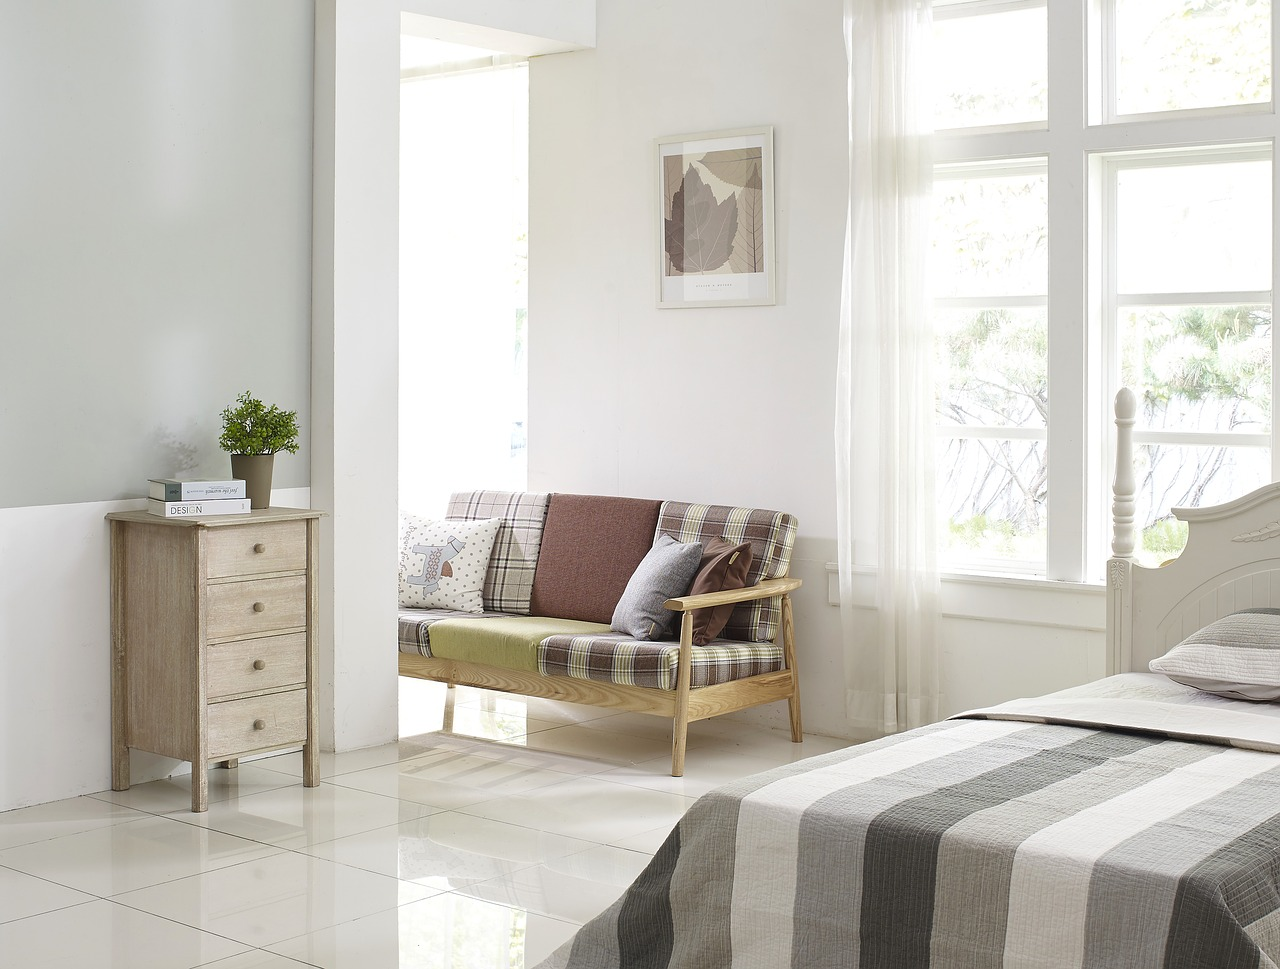 Simple Tips To Personalise Your PG Room In A Budget